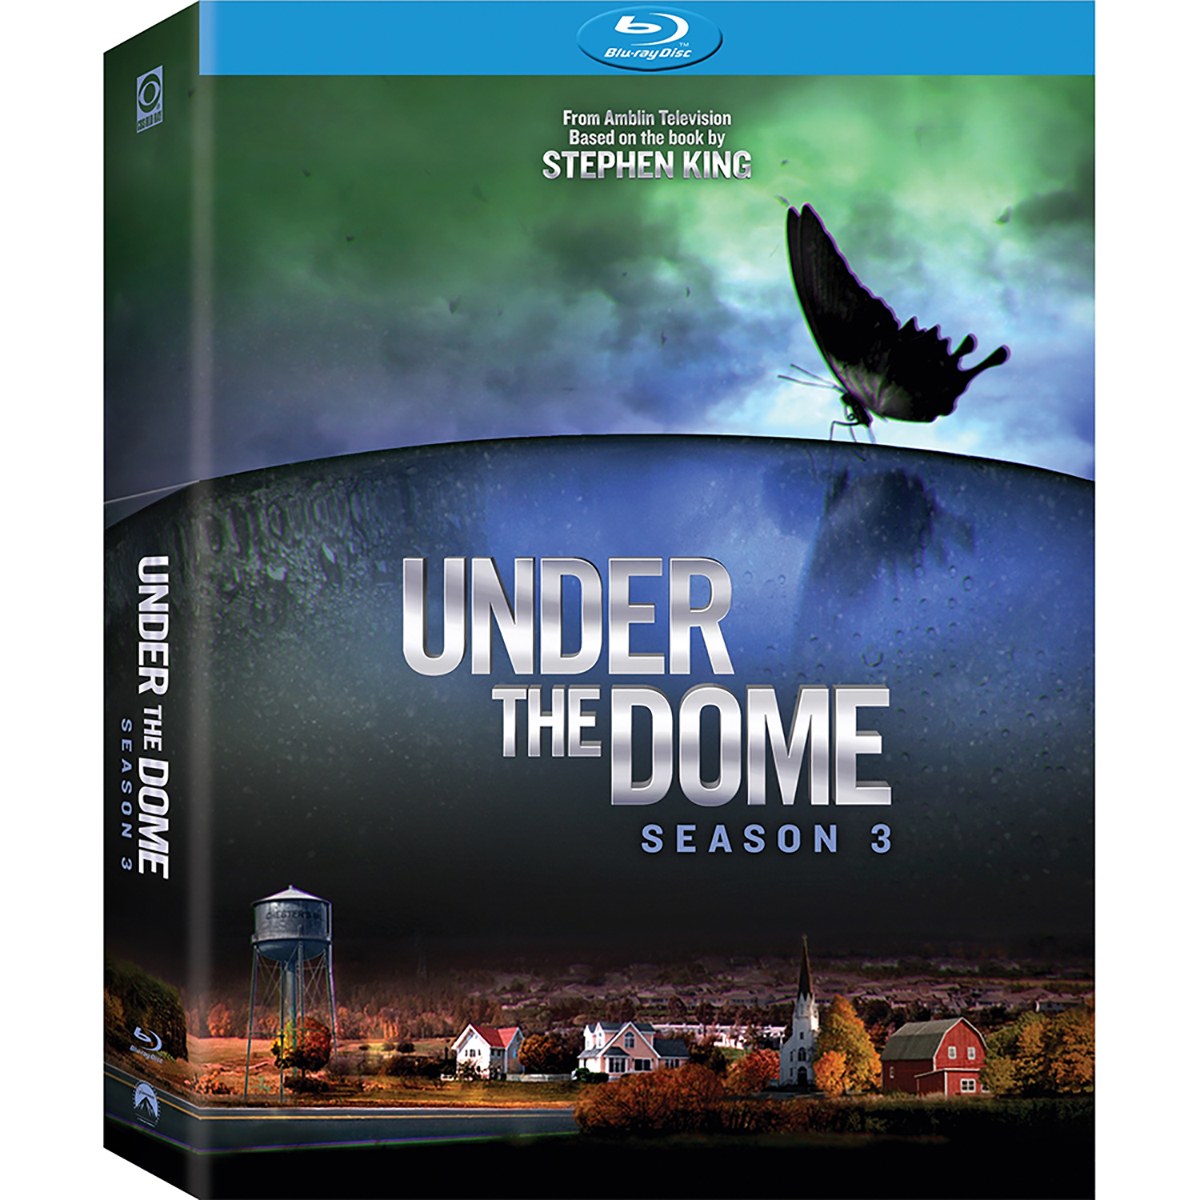 Under The Dome: Season 3 Blu-ray -  DVDs & Videos 6445-921620